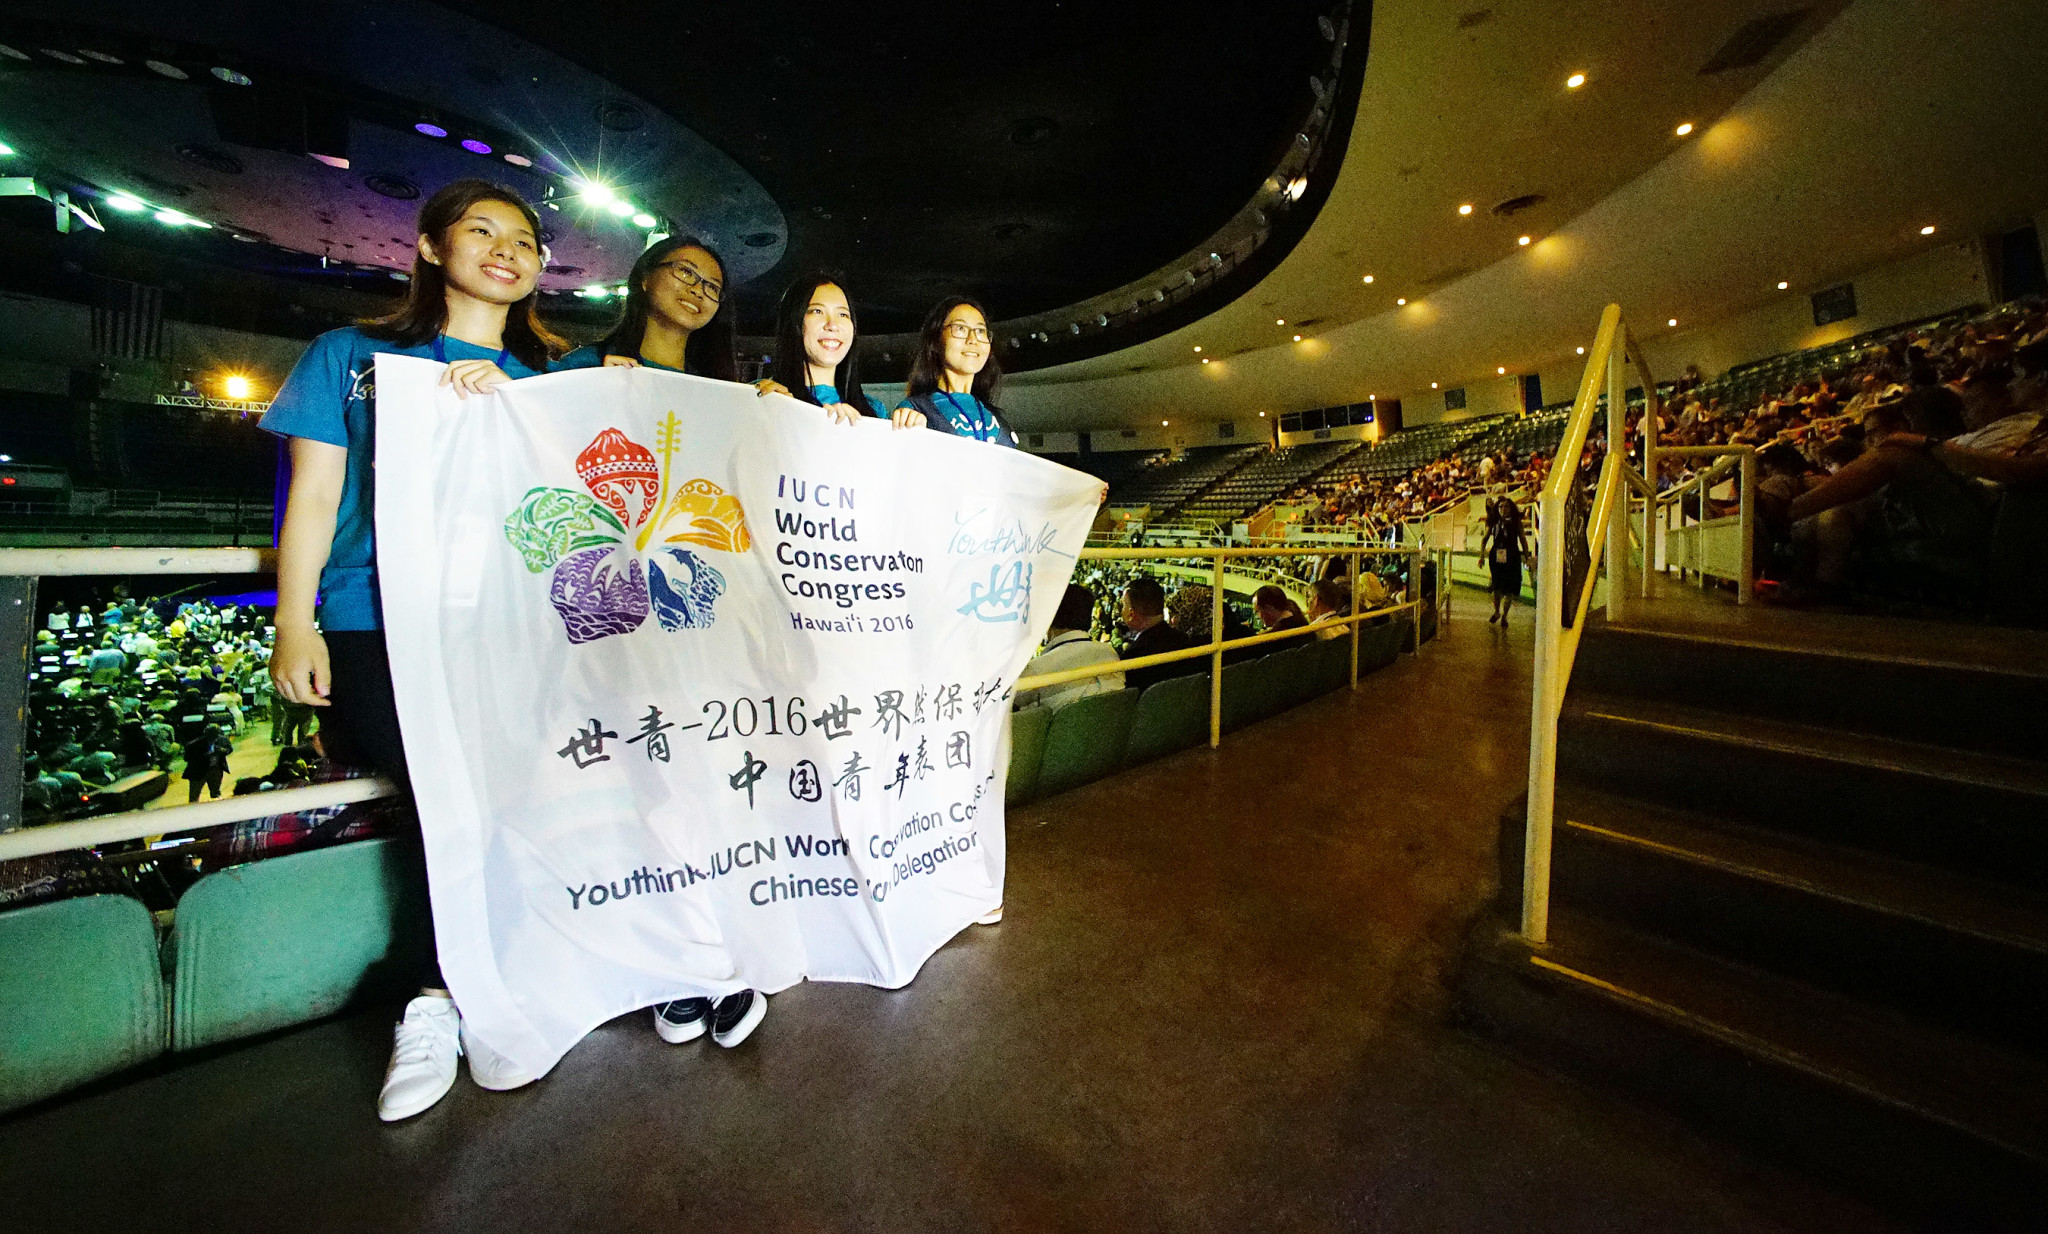 <p>Members of the Chinese Youth Delegation displayed a banner at the opening ceremonies. The event later shifted to the Hawaii Convention Center, where it will continue through Sept. 10.</p>